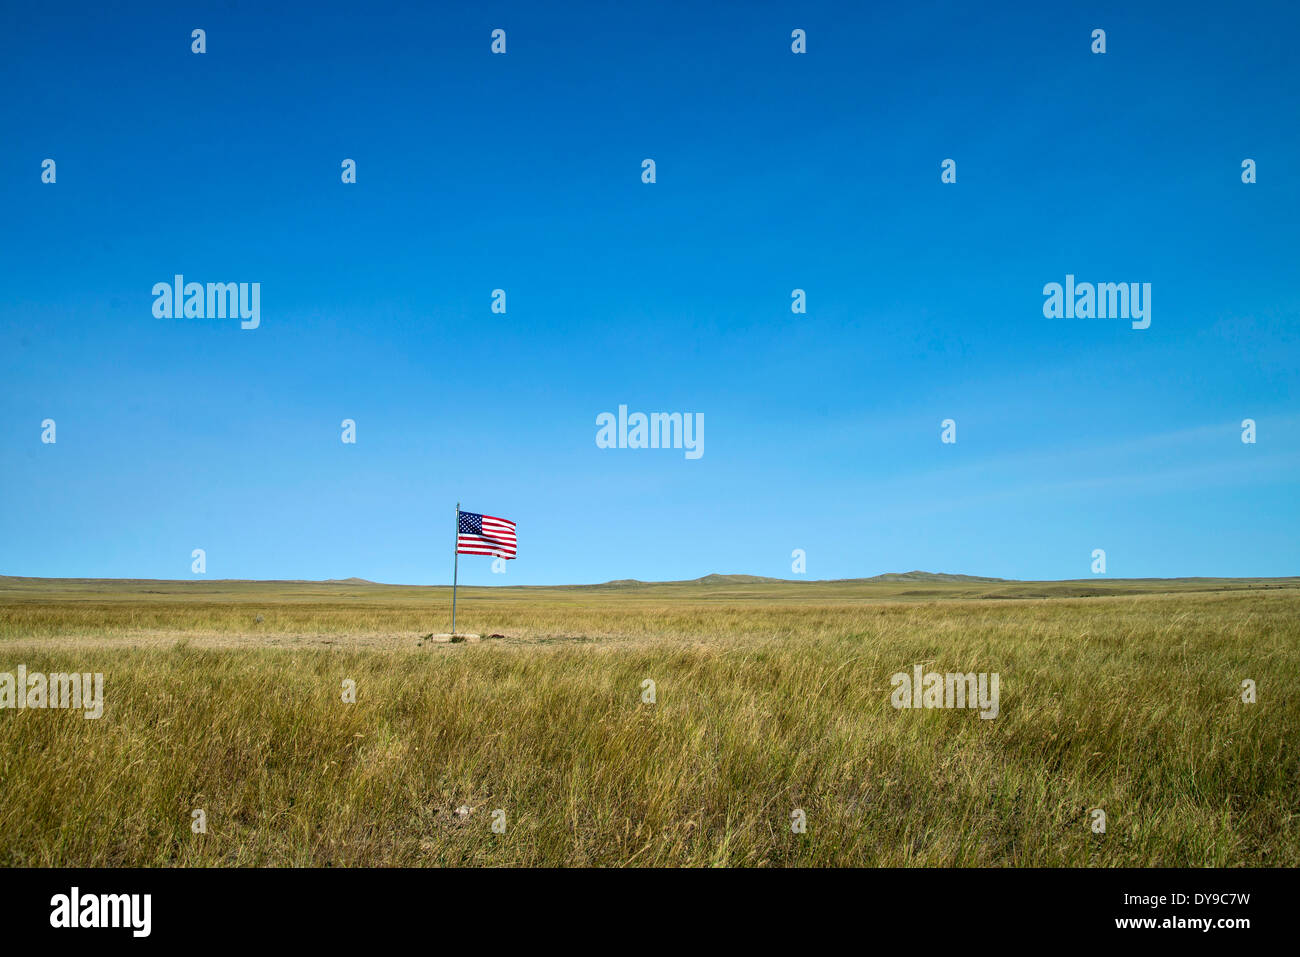 Actual, geographic, center, middle, South Dakota, USA, United States, America, flag - Stock Image